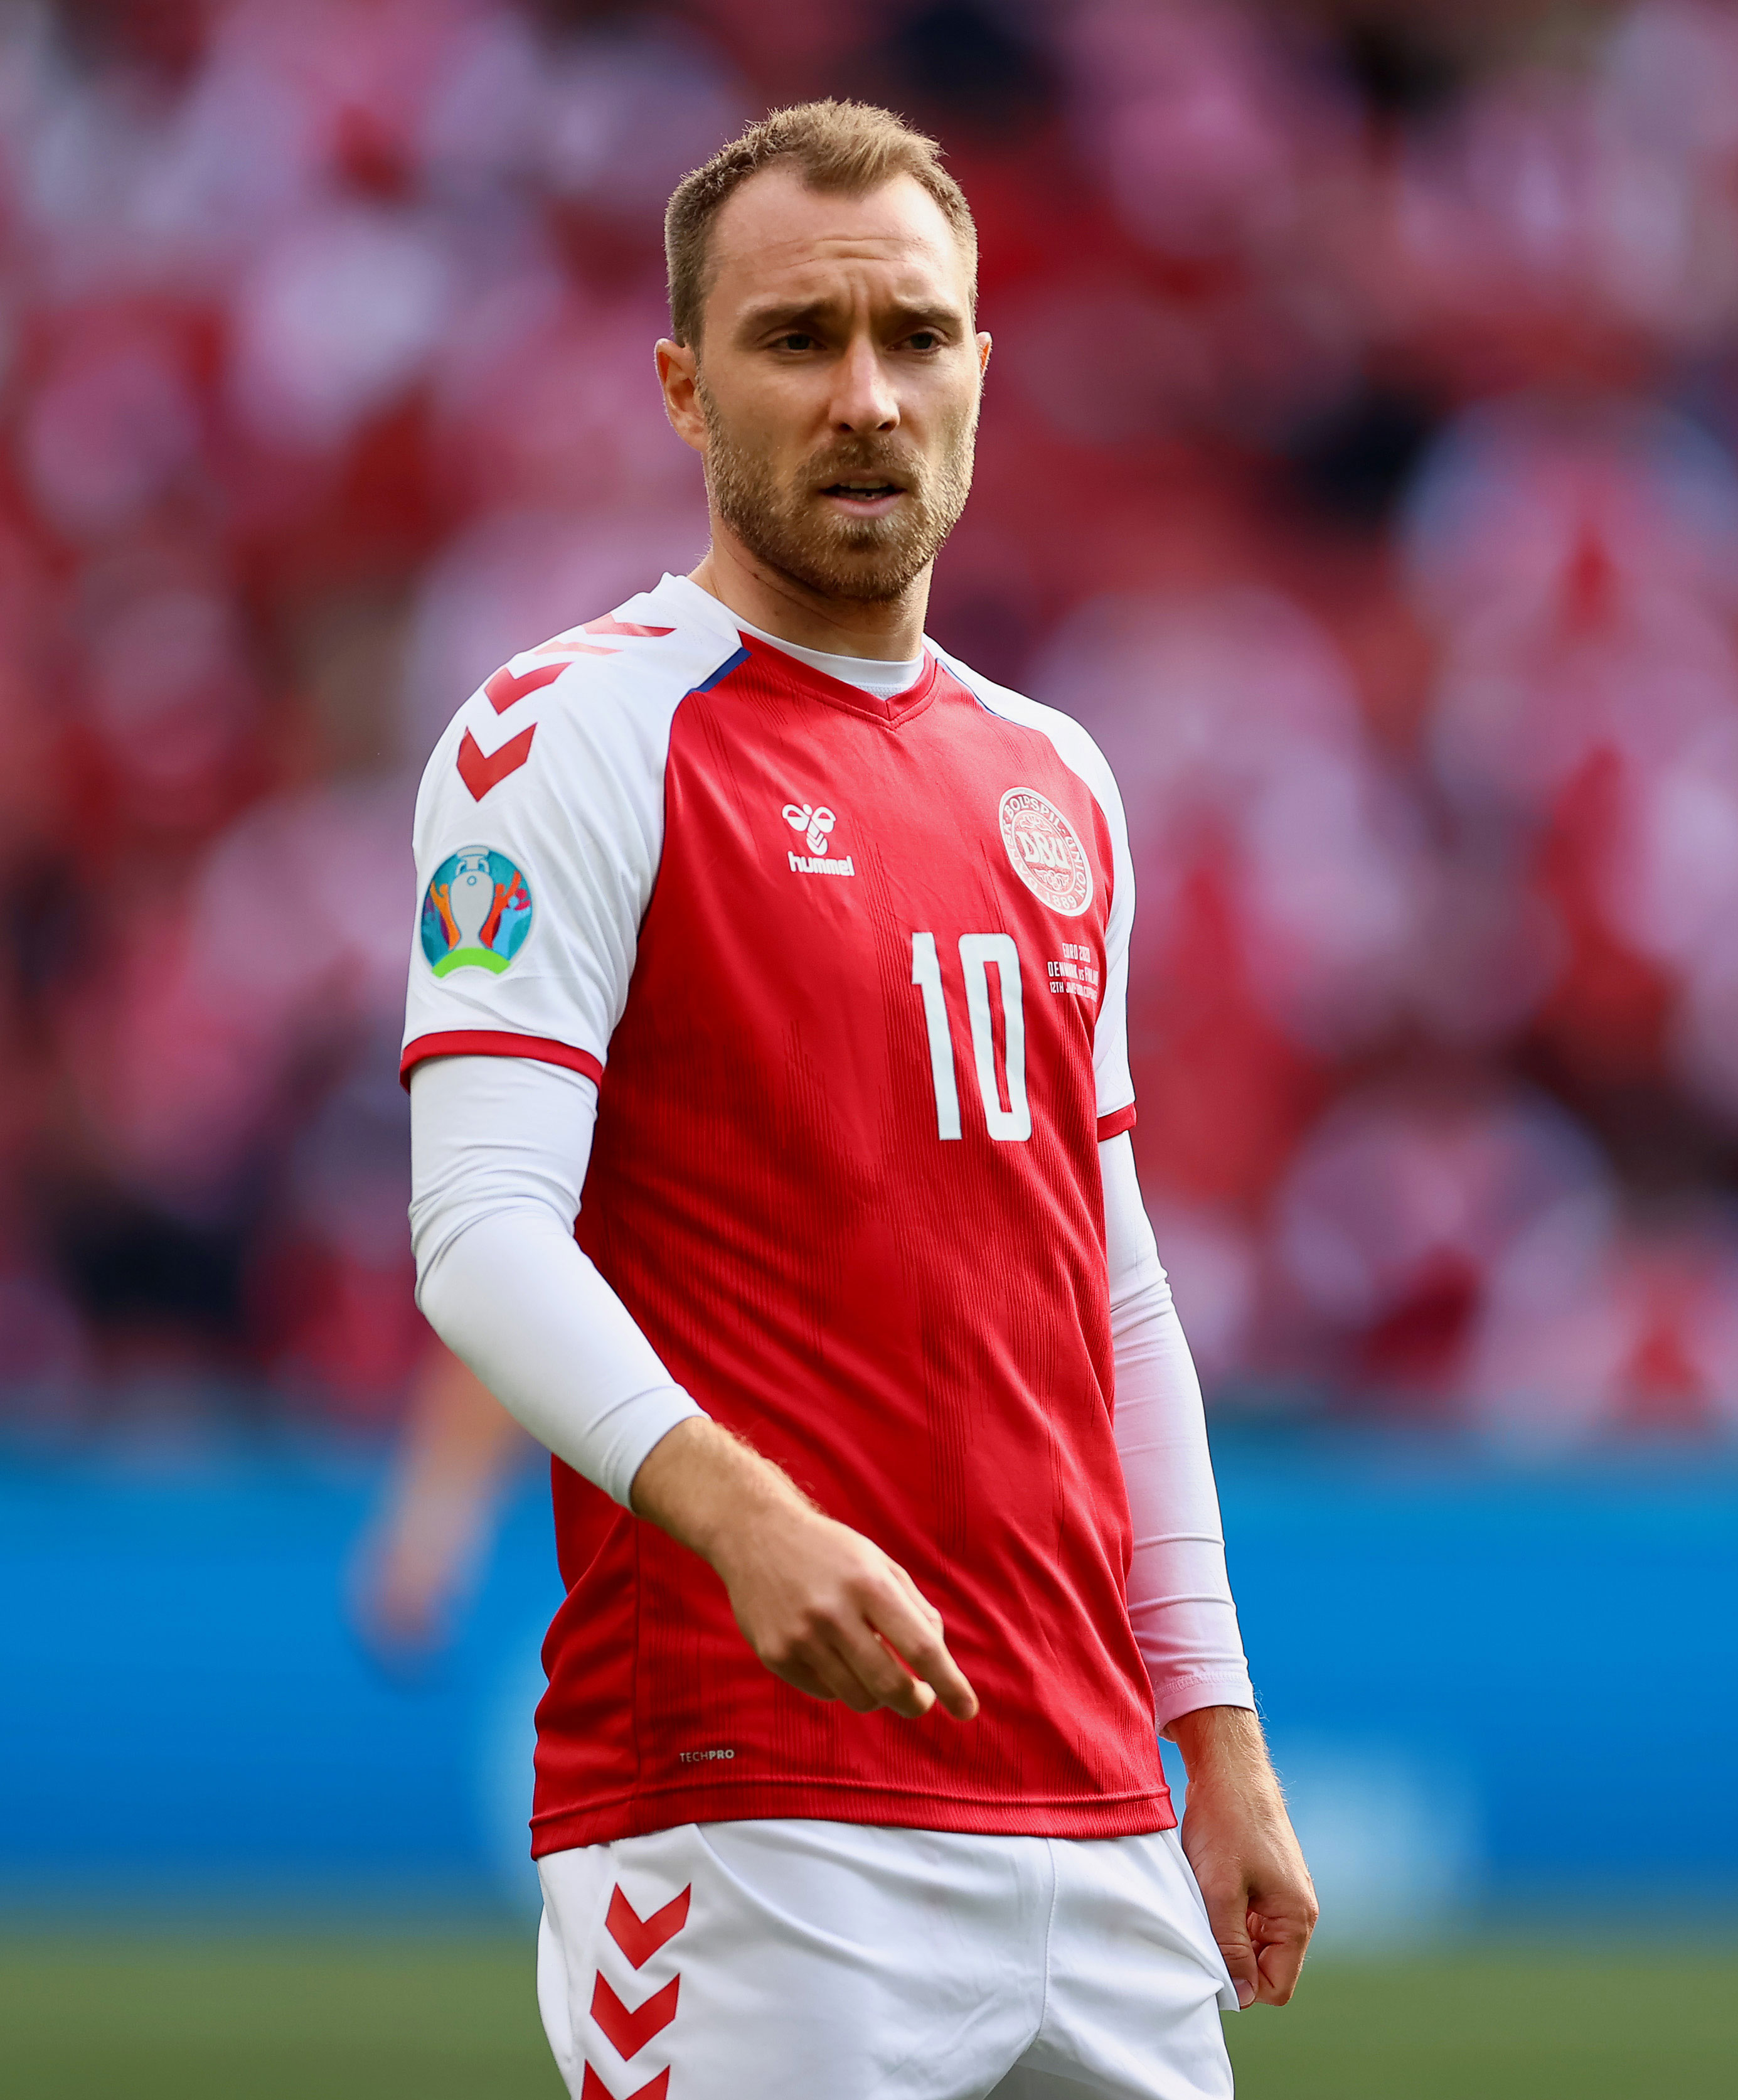 Christian Eriksen suffered cardiac arrest during Euros match and 'was gone' before resuscitation, doctor says